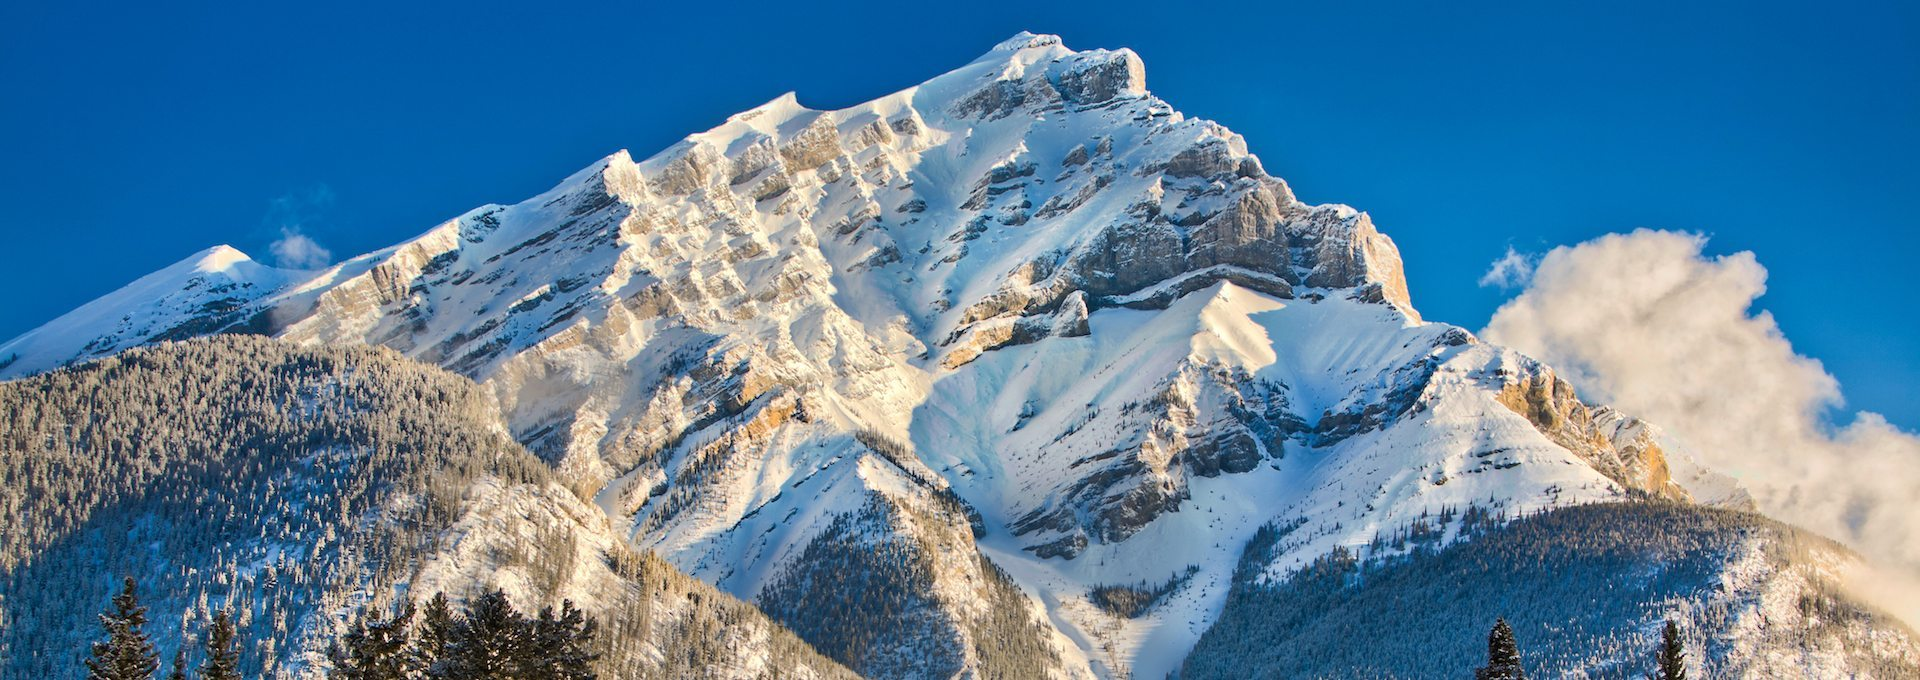 Things to Do in Banff, Winter